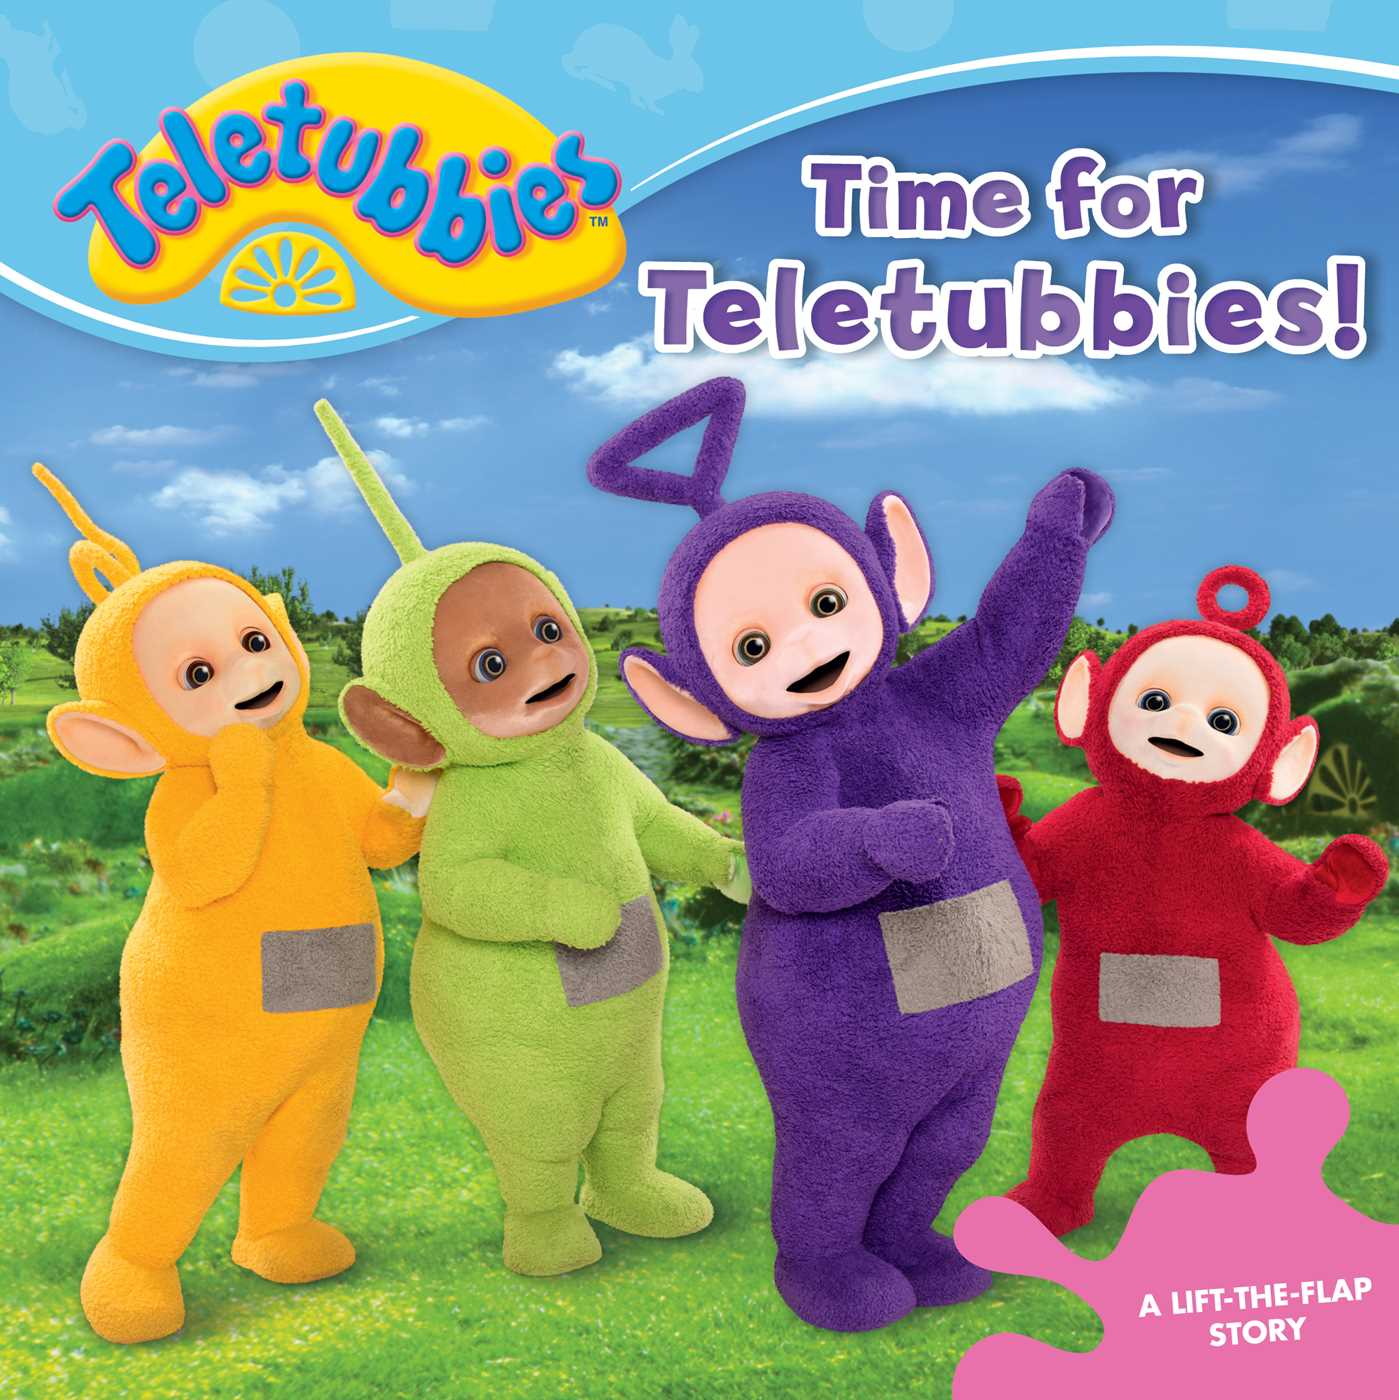 Time for teletubbies 9781481480536 hr